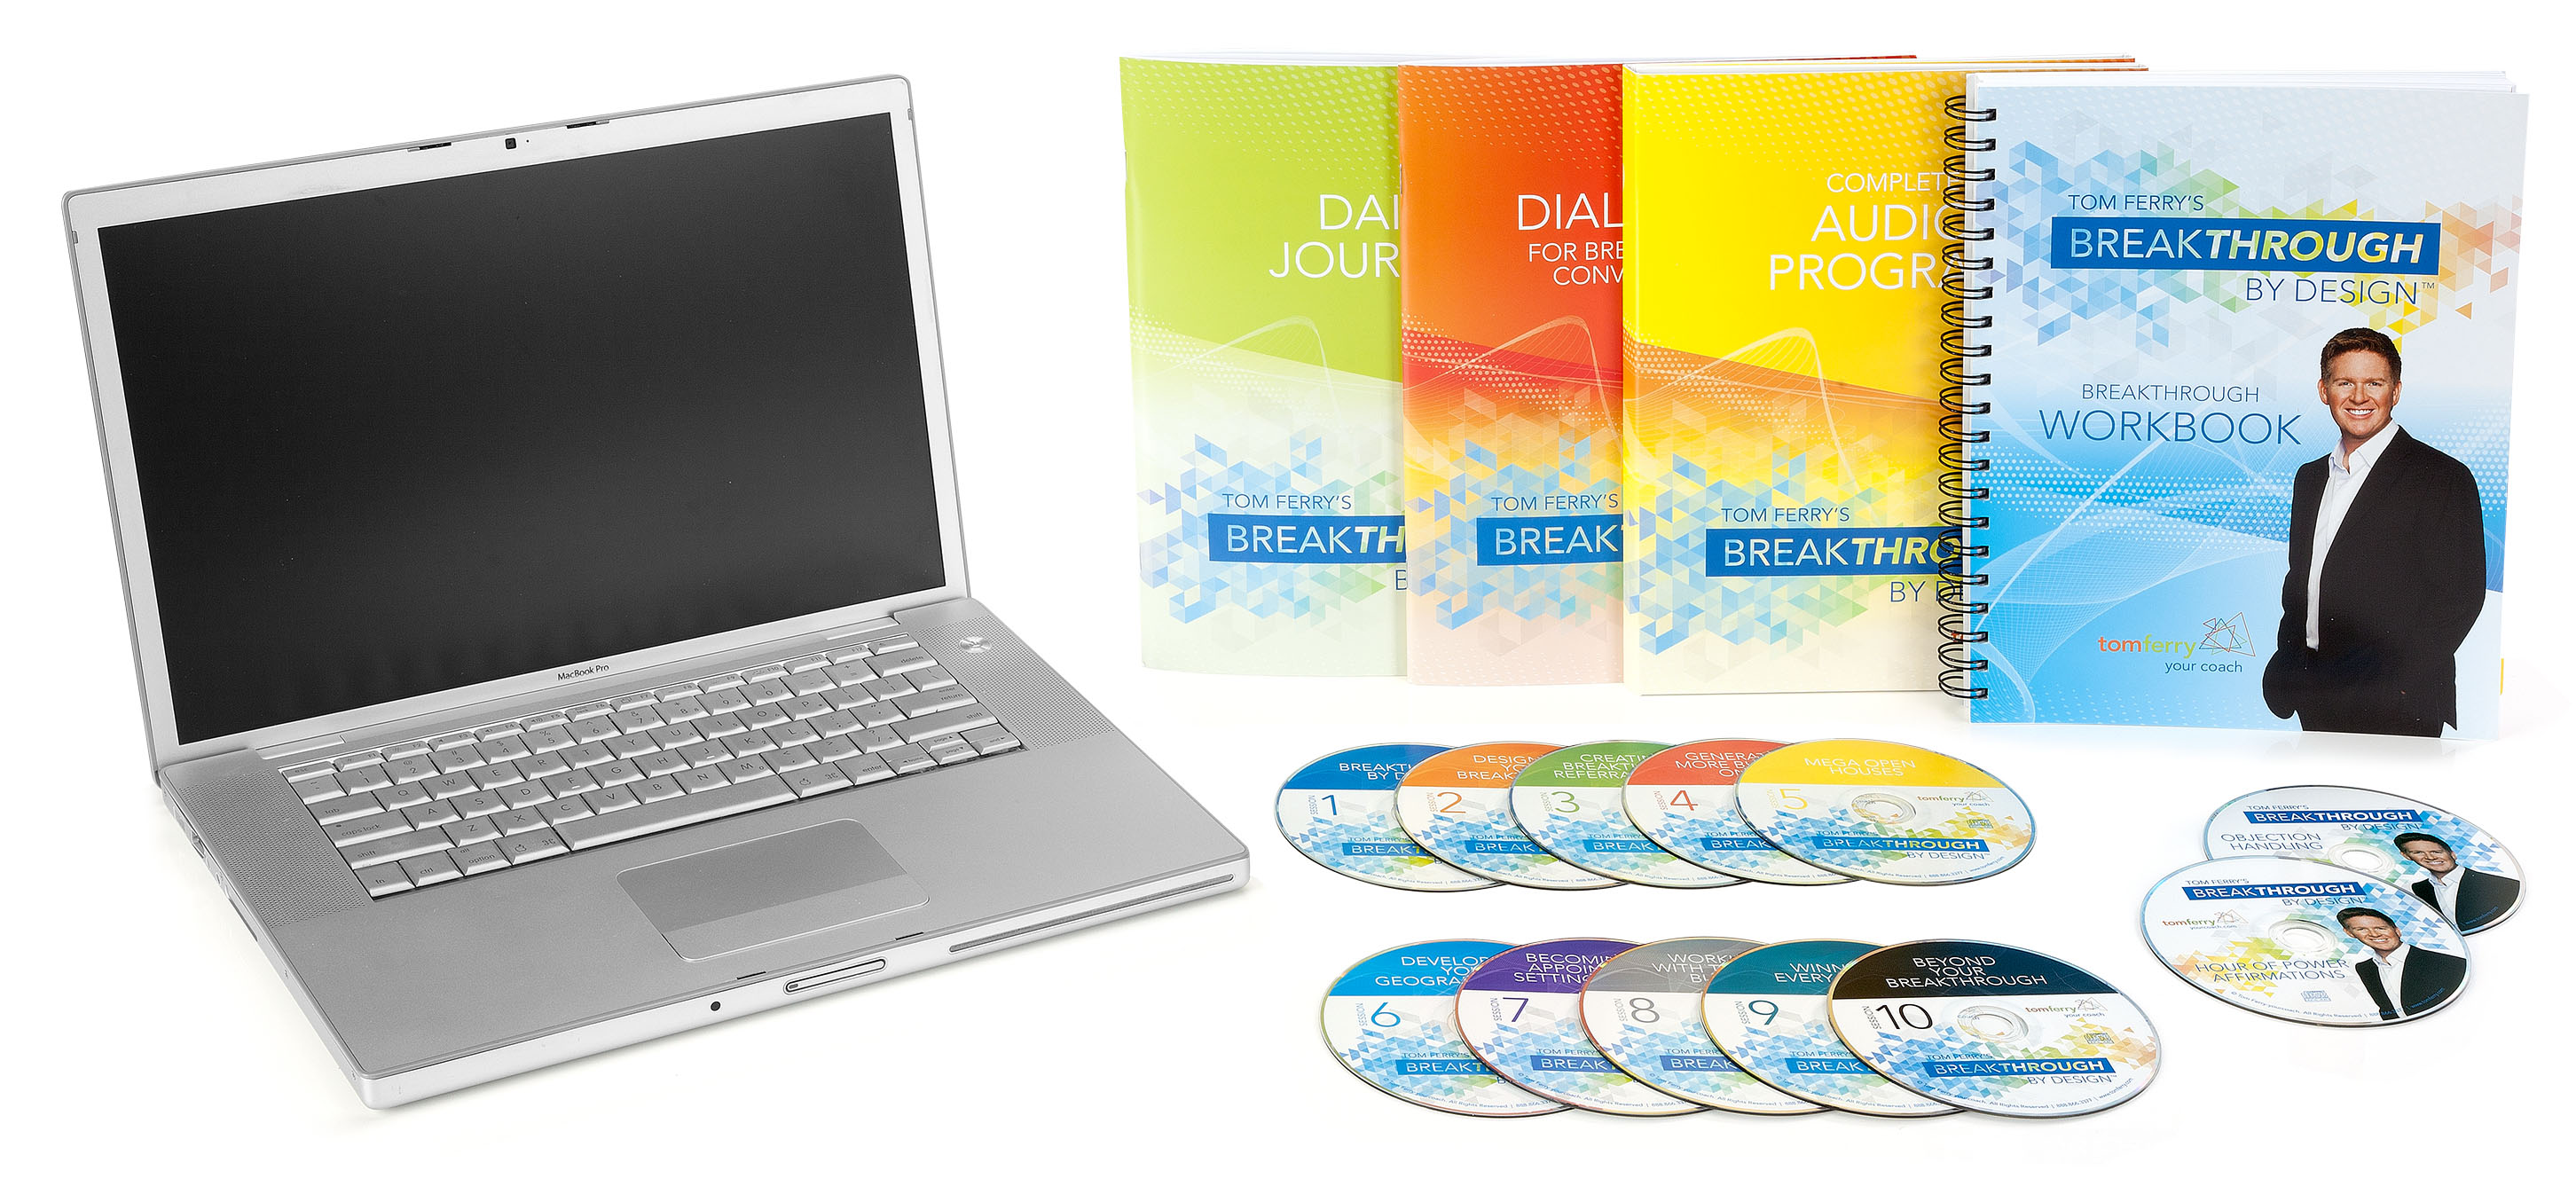 Breakthrough By Design Kit